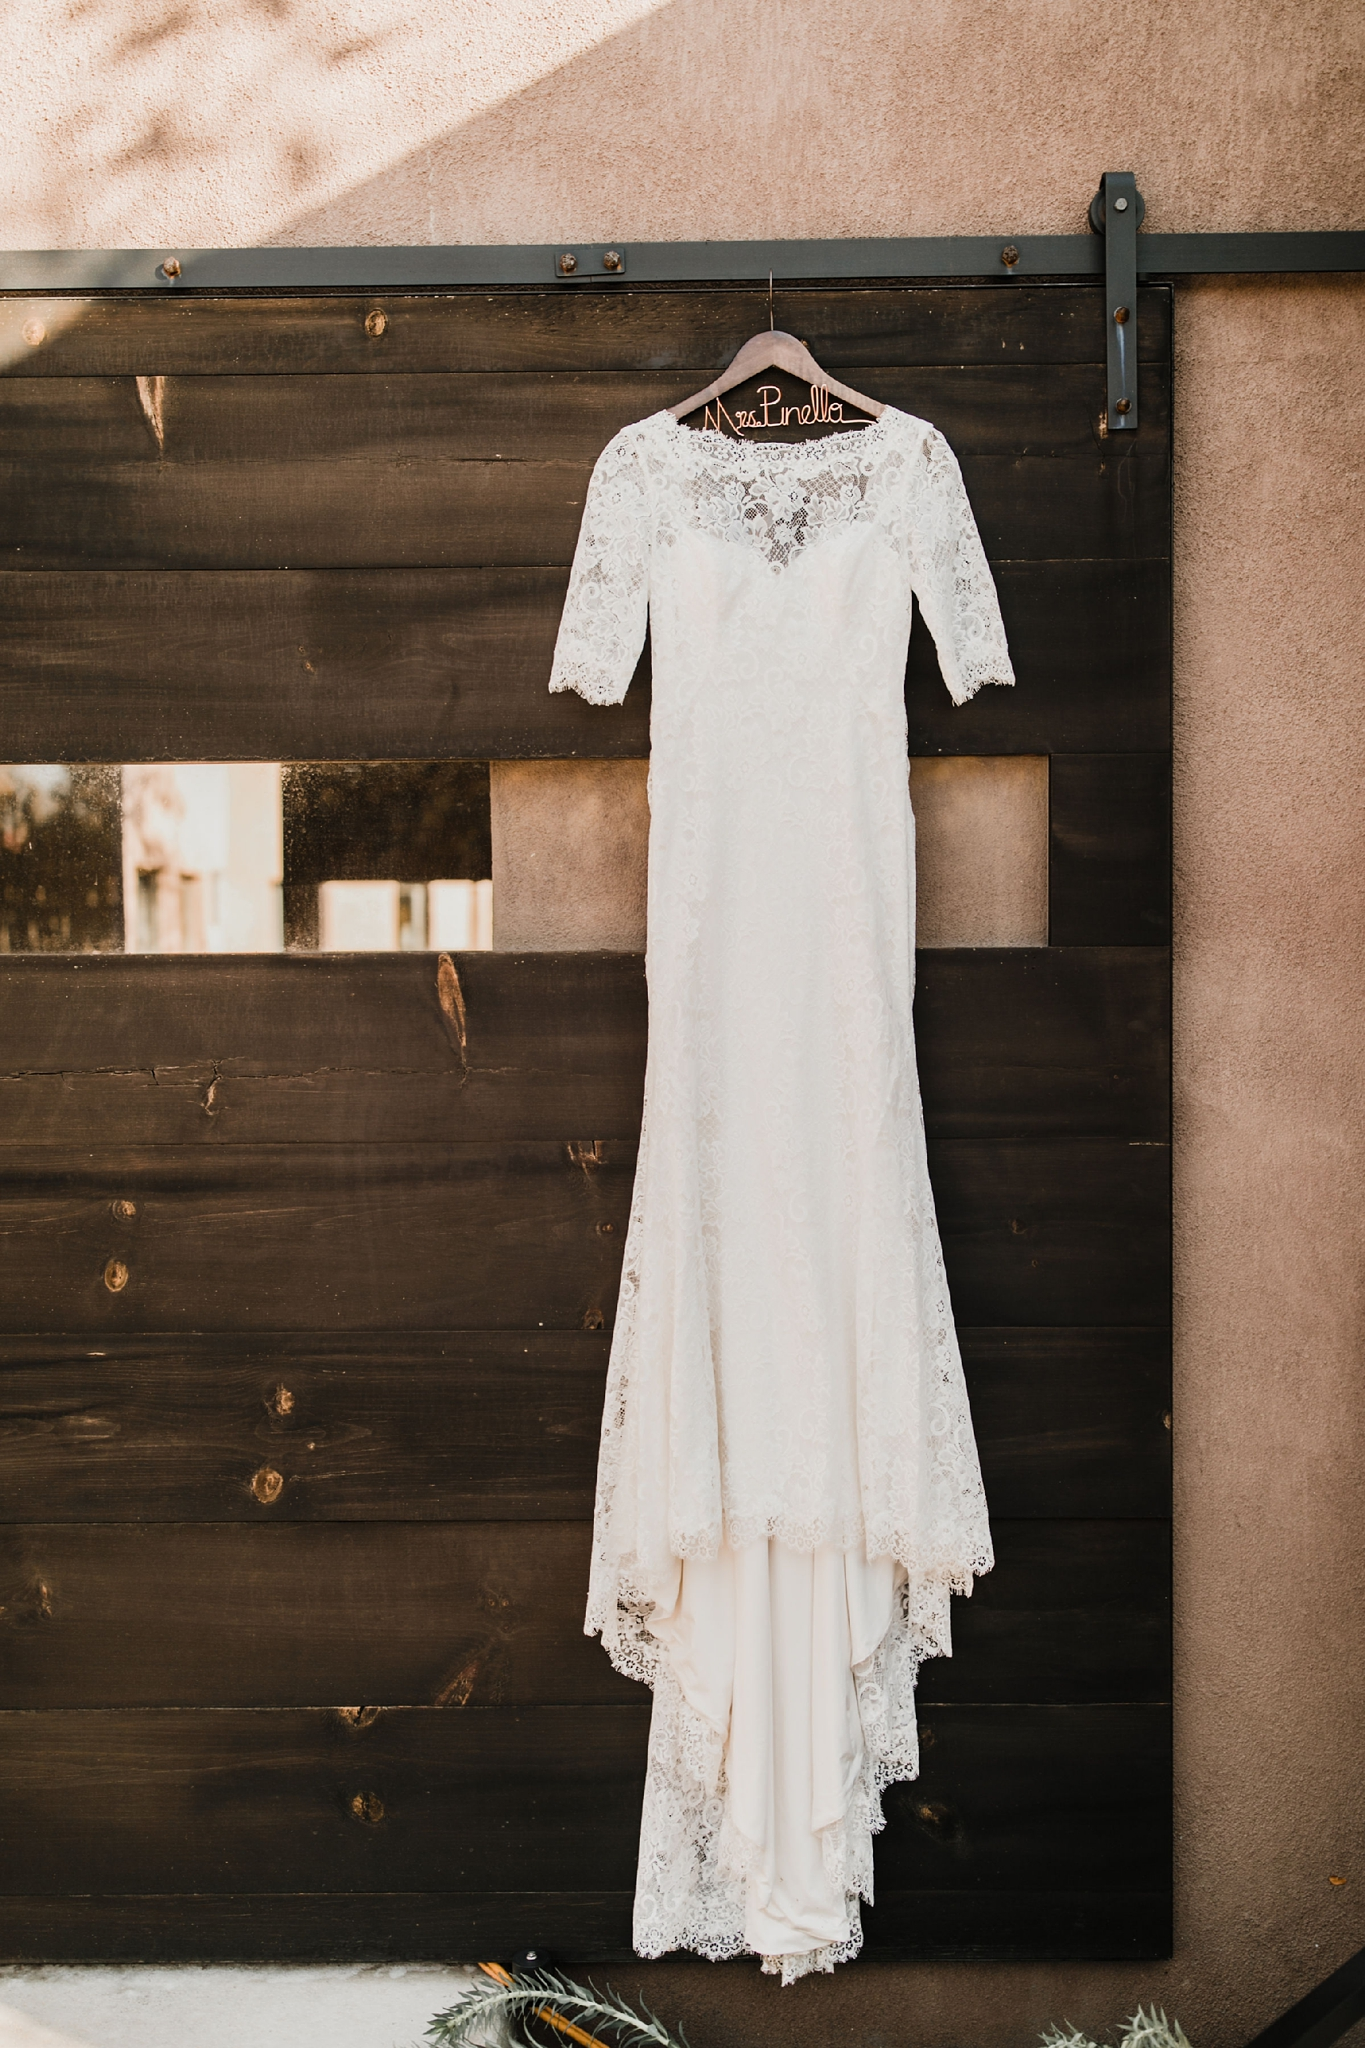 Alicia+lucia+photography+-+albuquerque+wedding+photographer+-+santa+fe+wedding+photography+-+new+mexico+wedding+photographer+-+new+mexico+wedding+-+wedding+venues+-+new+mexico+wedding+venues+-+colorado+wedding+venues_0001.jpg